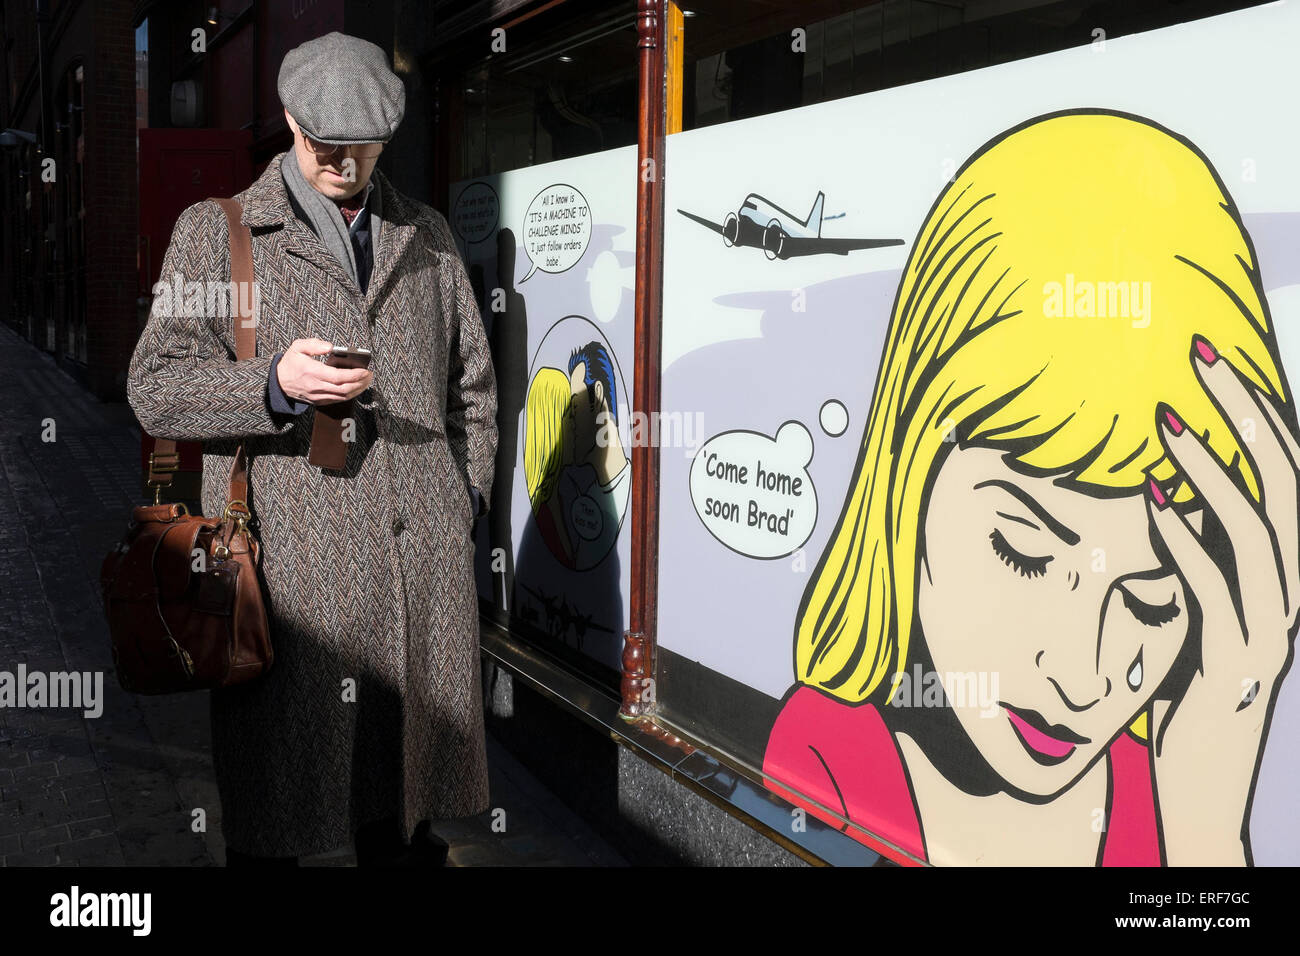 Roy Lichtenstein illustrations on the windows of a gambling and gaming casino in London, UK. - Stock Image